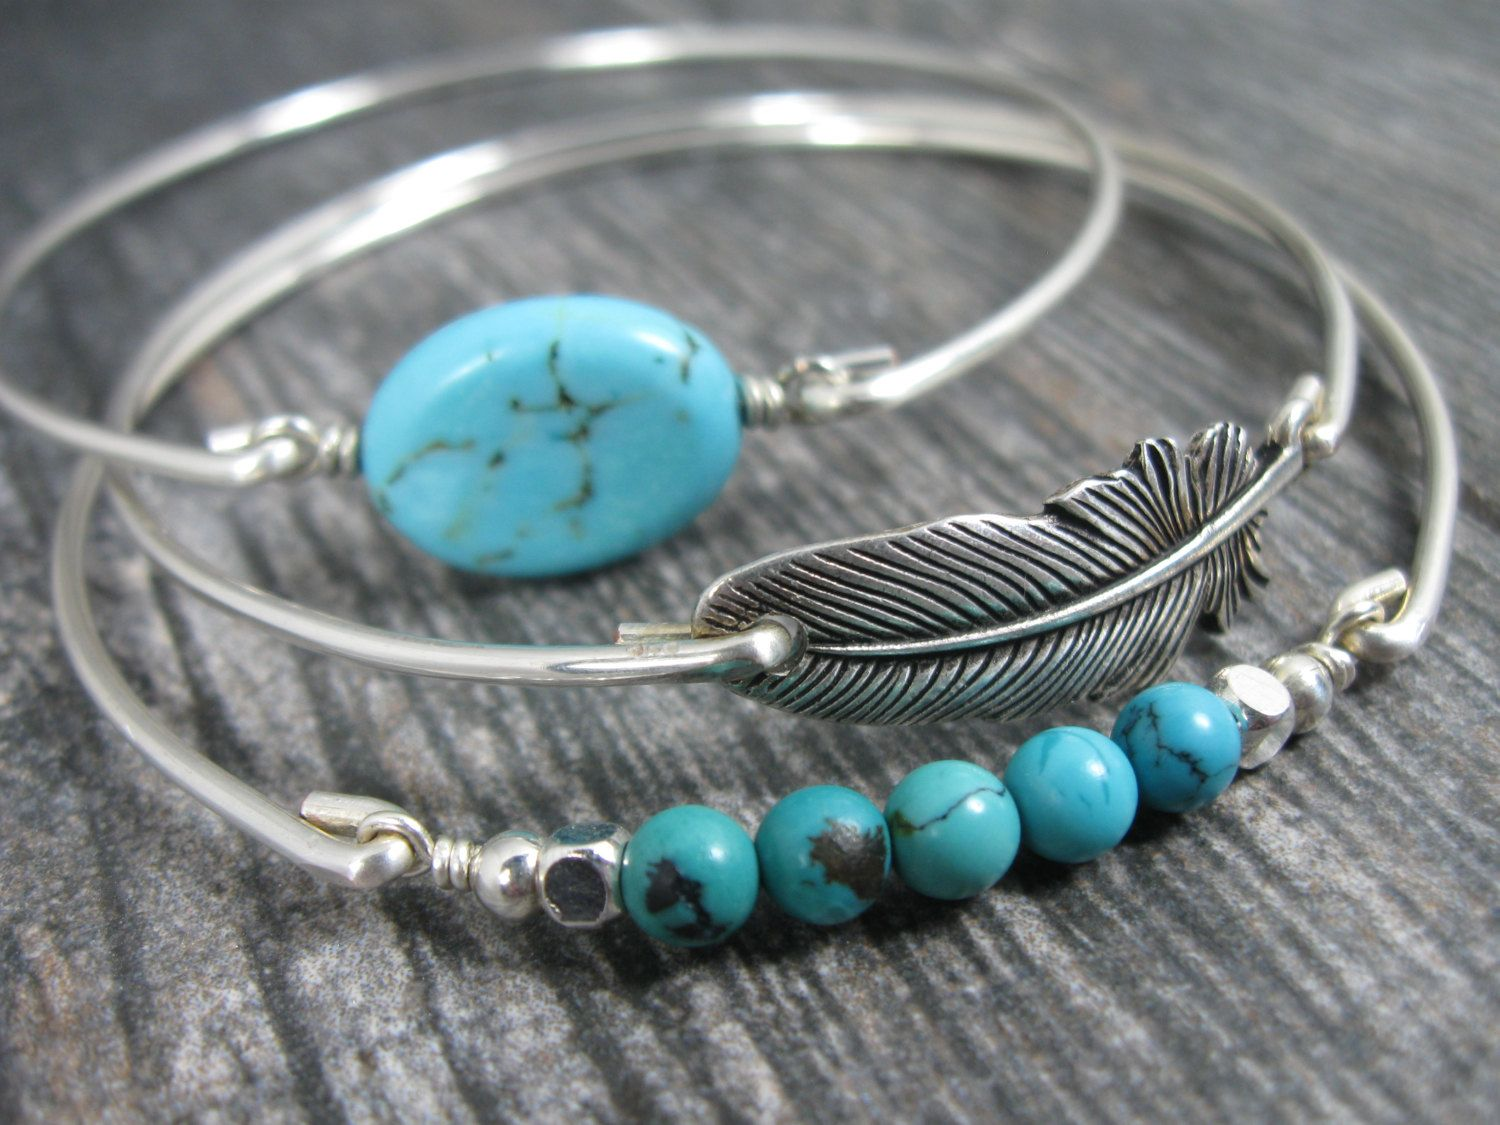 Silver and Turquoise Bangle Bracelet Set, Silver Bangle, Set, Silver Feather, Turqoise, Turquoise Jewelry, Feather Jewelry, Western Jewelry